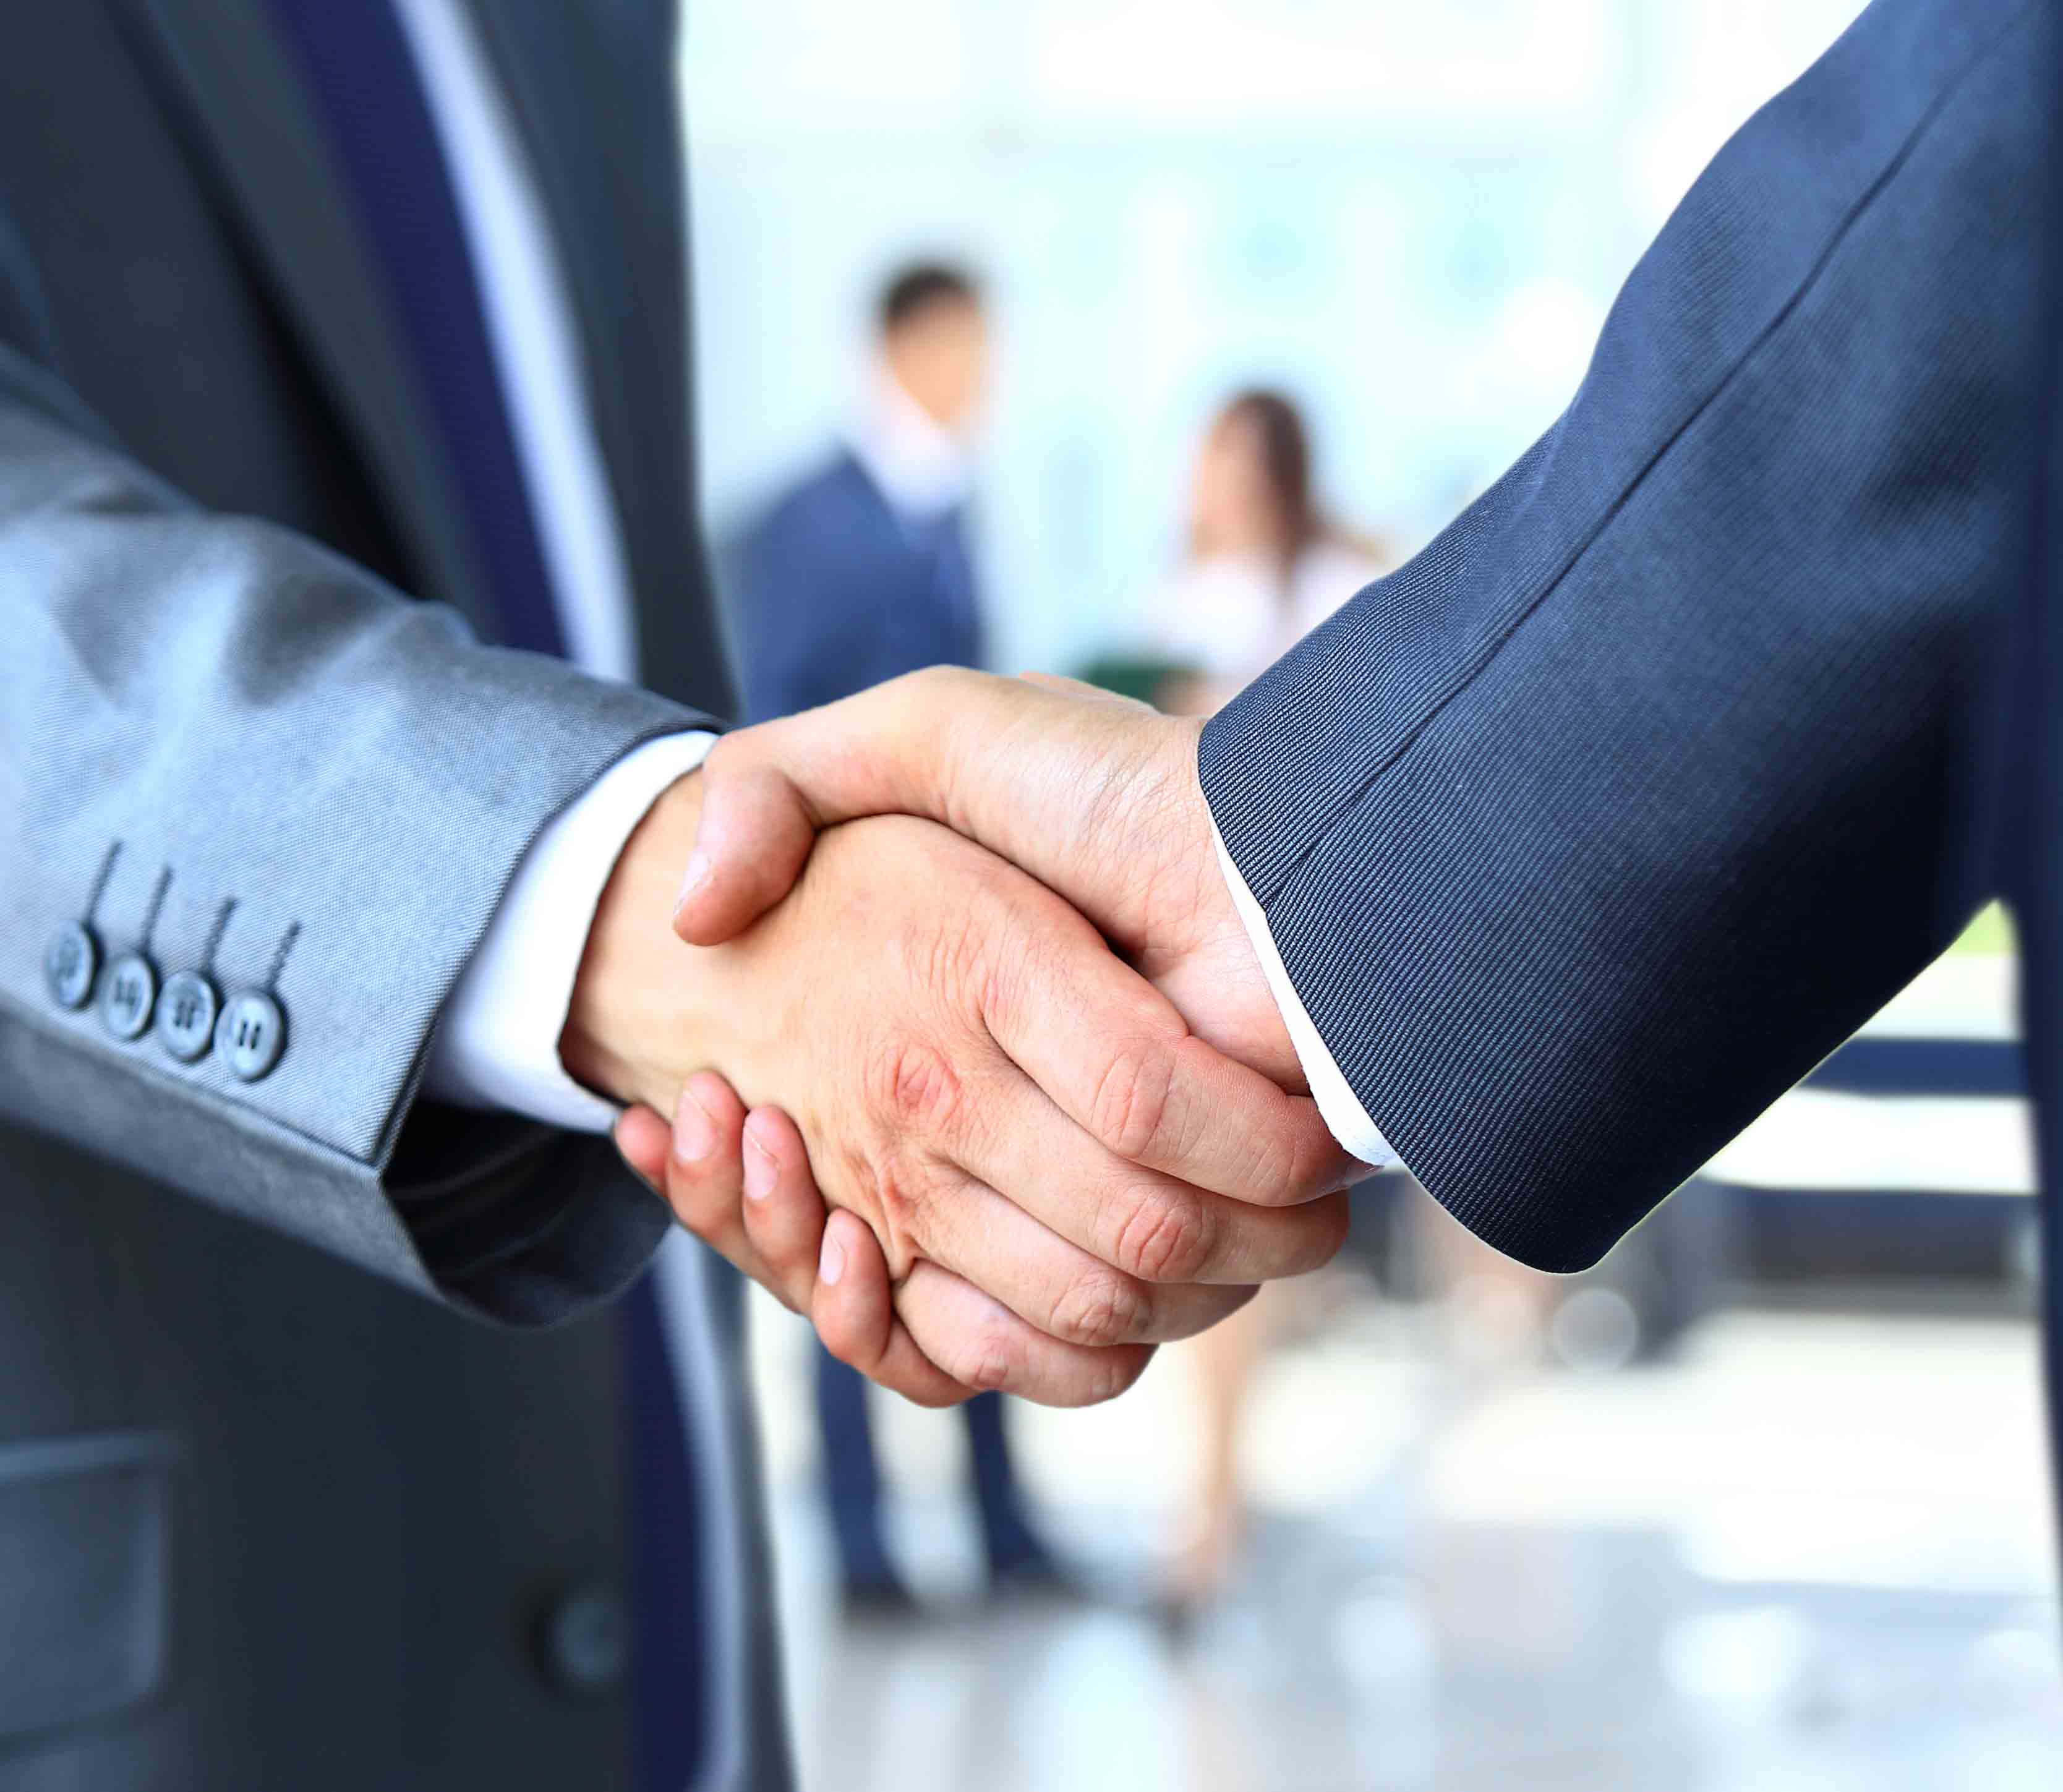 Businessmen sealing a deal with a handshake